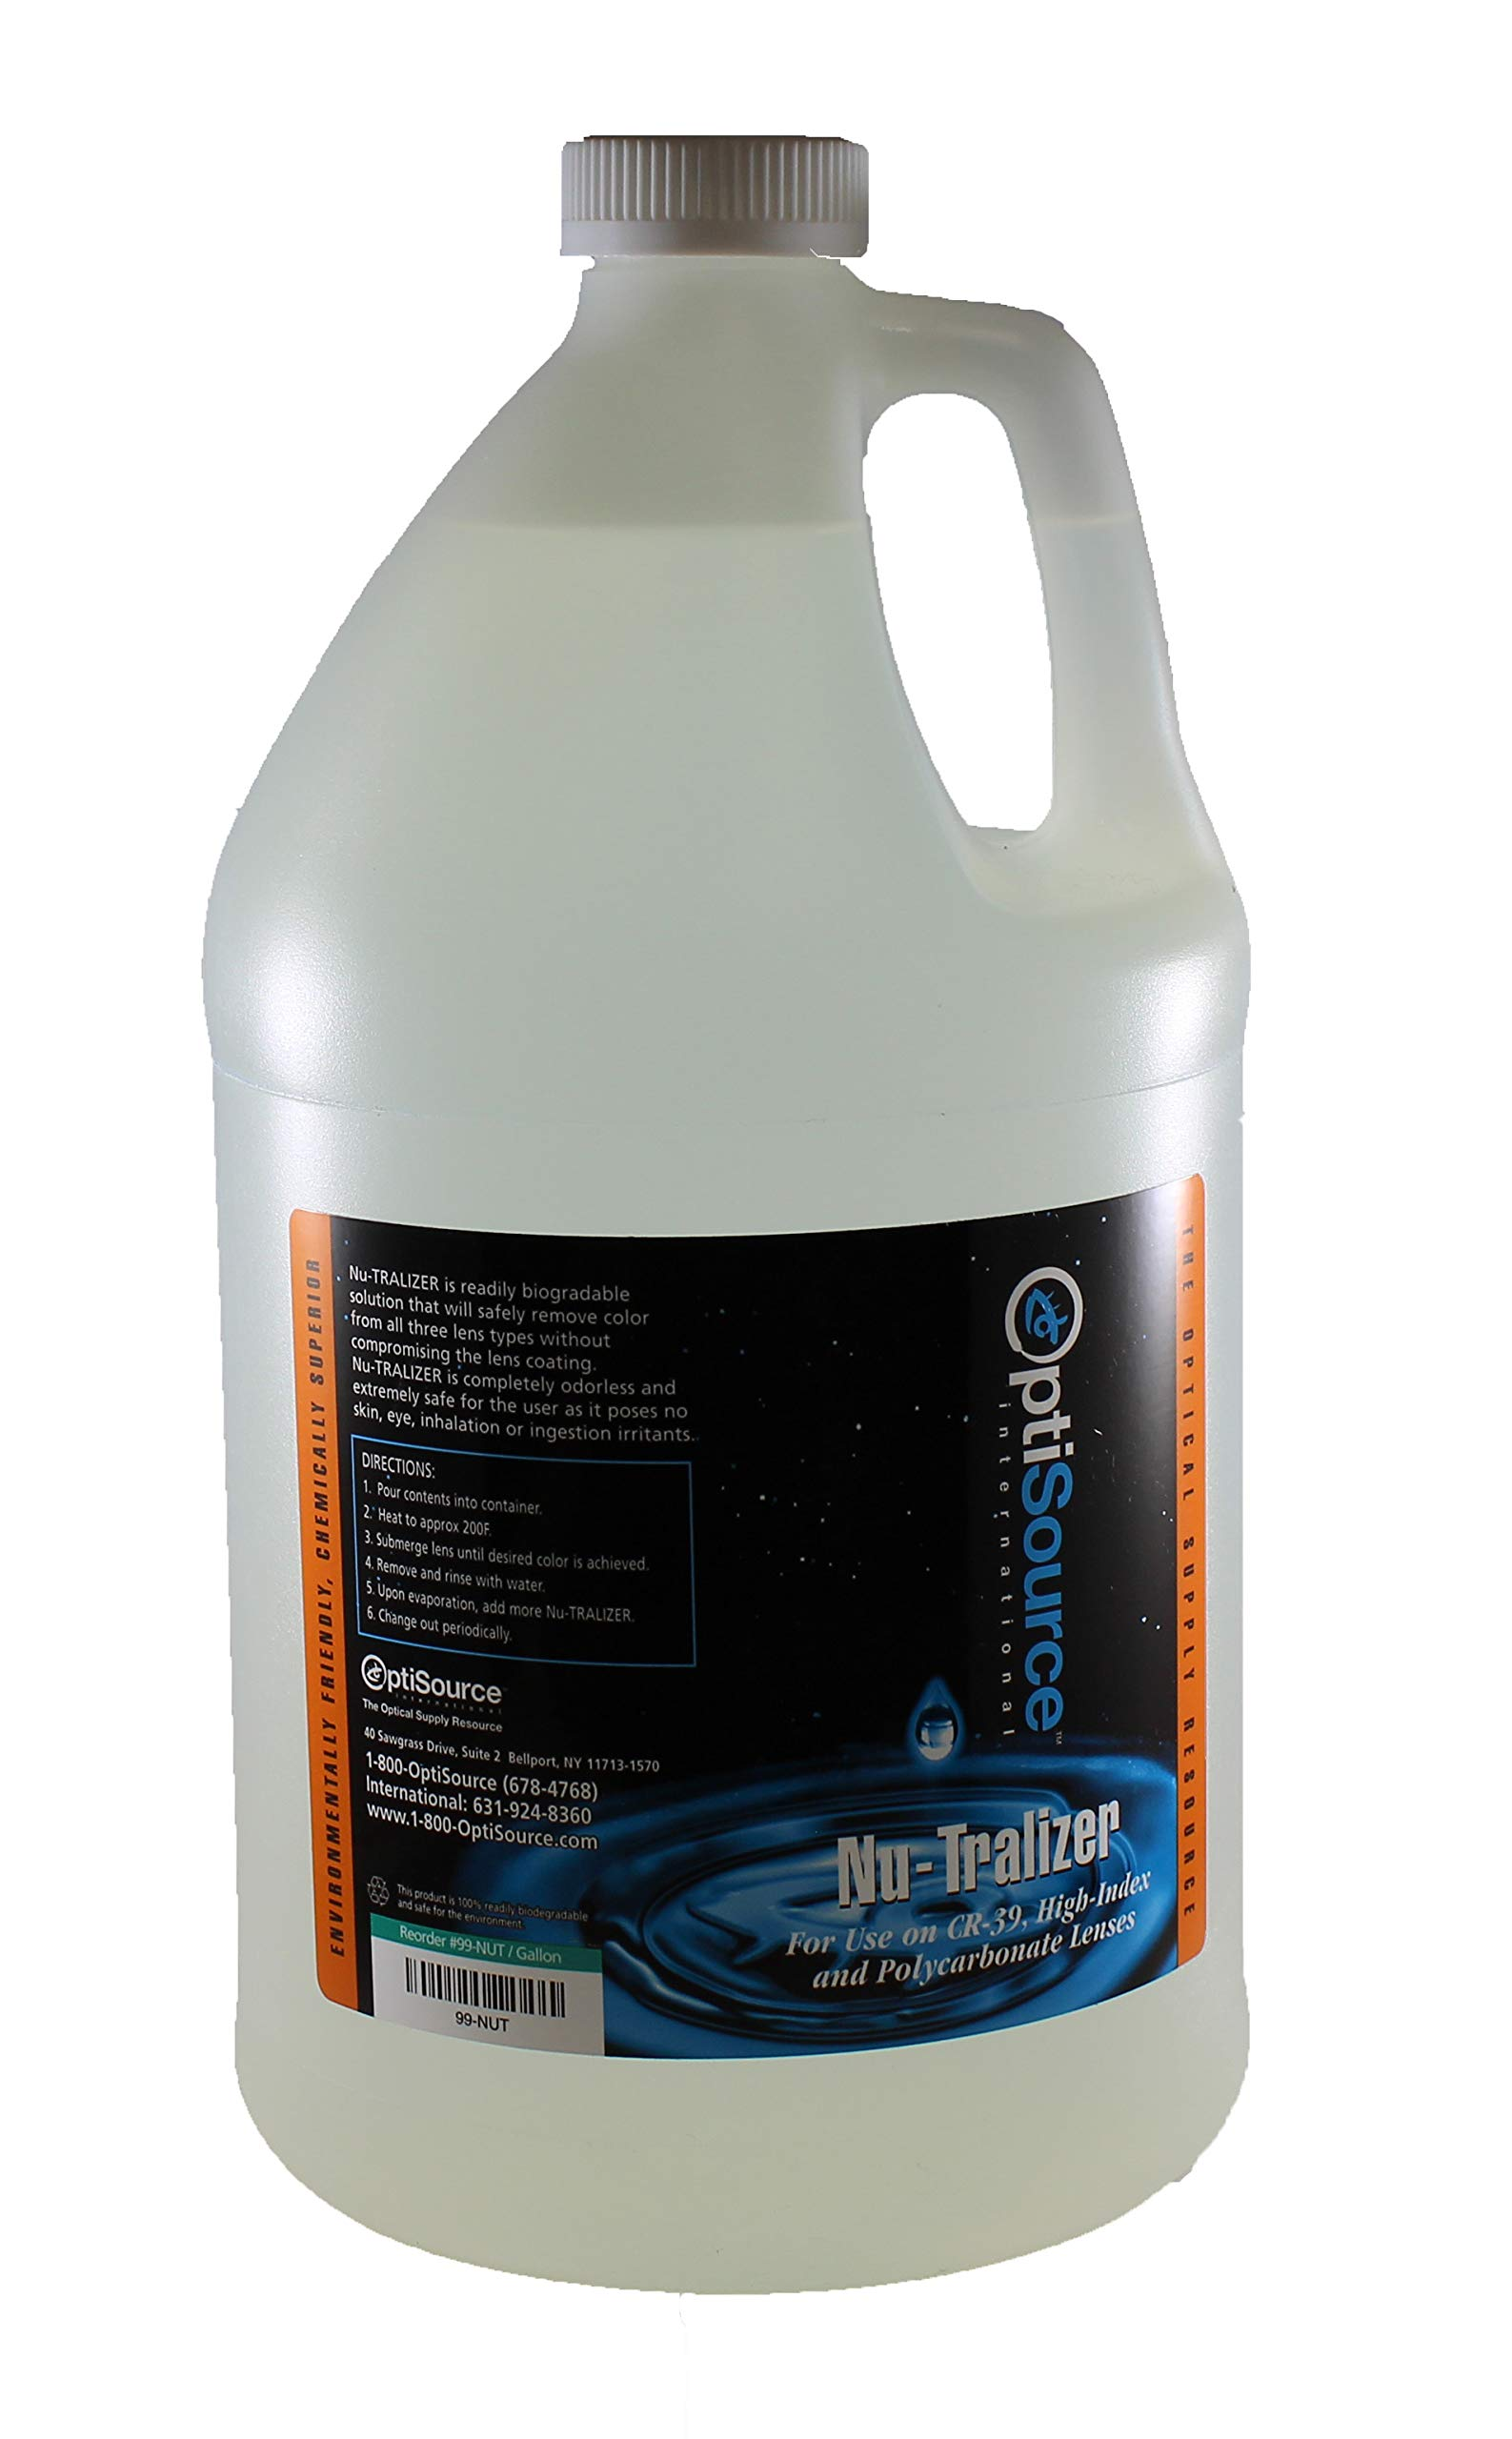 CR-39 Nu-Tralizer Gallon TEM: #99-CR - Takes color out of lenses, that other neutralizers can't